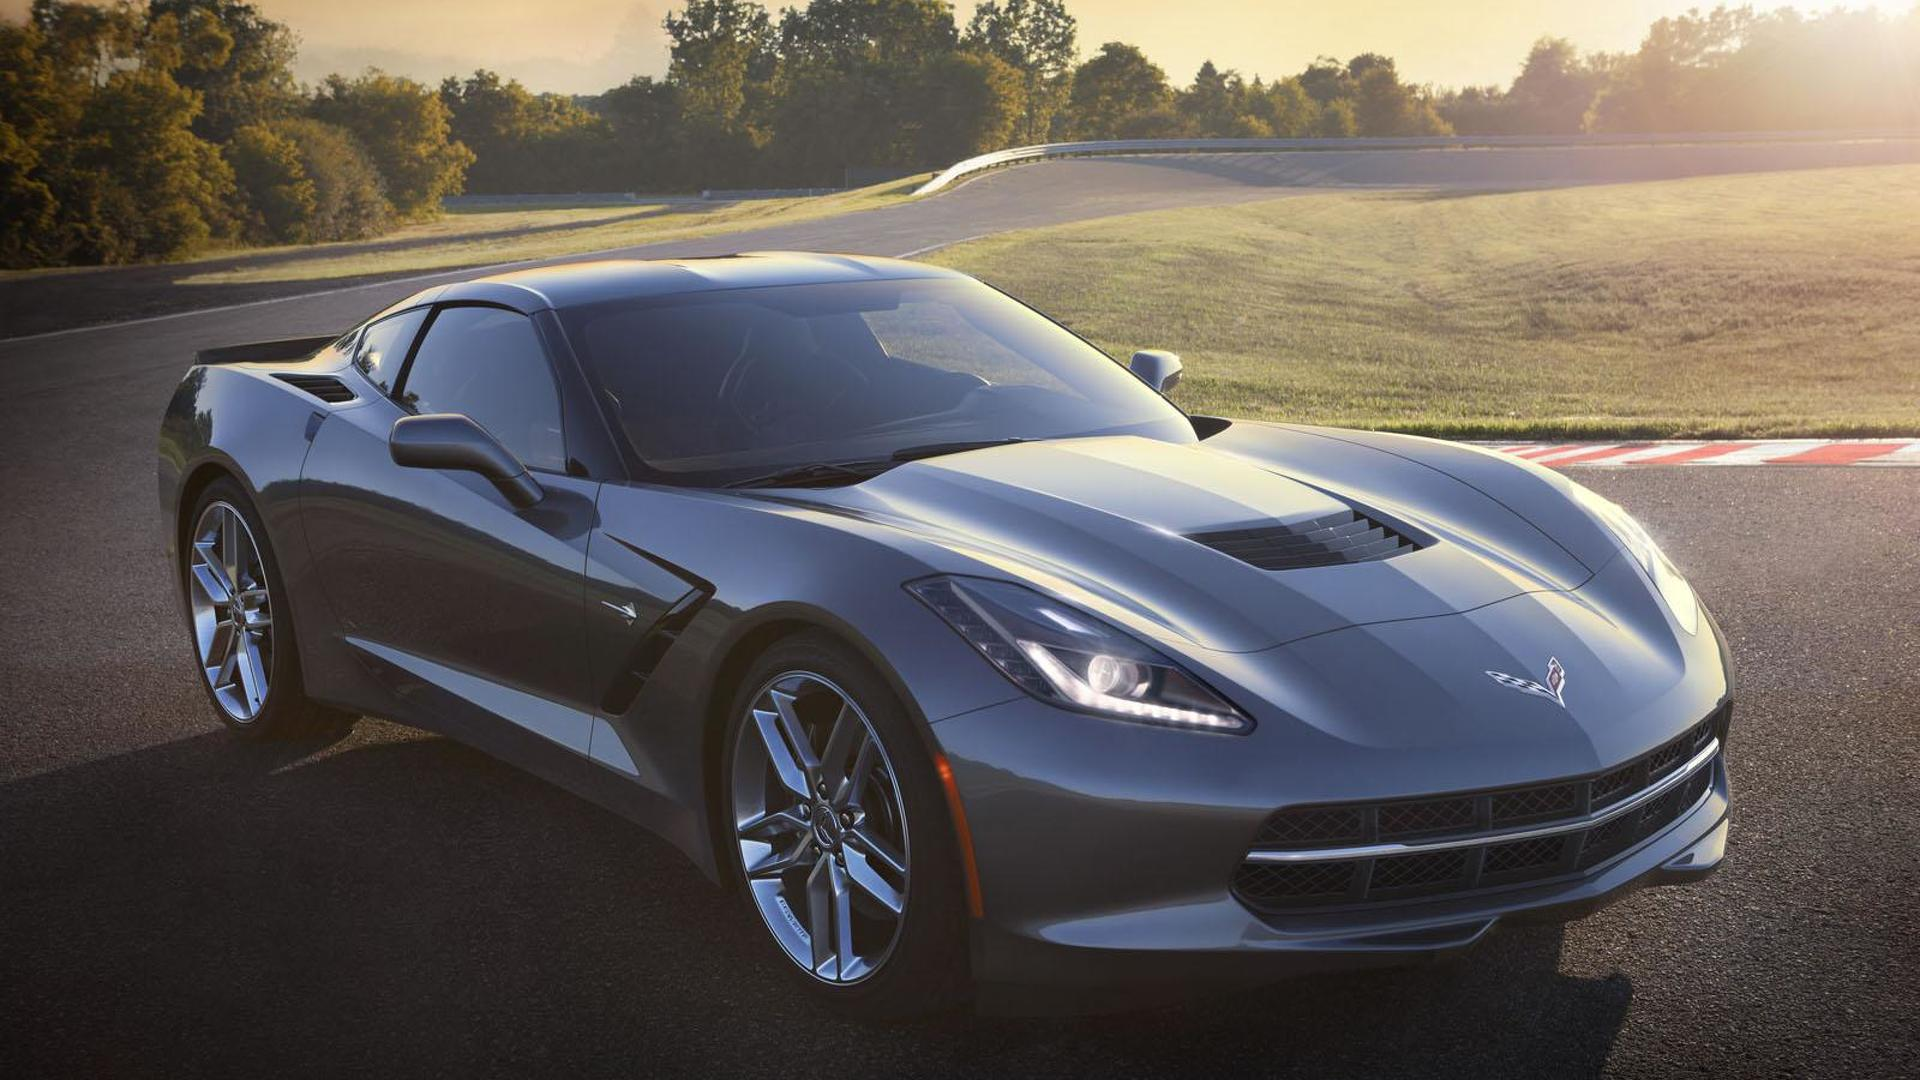 Chevrolet details the engineering behind the new Corvette Stingray [video]